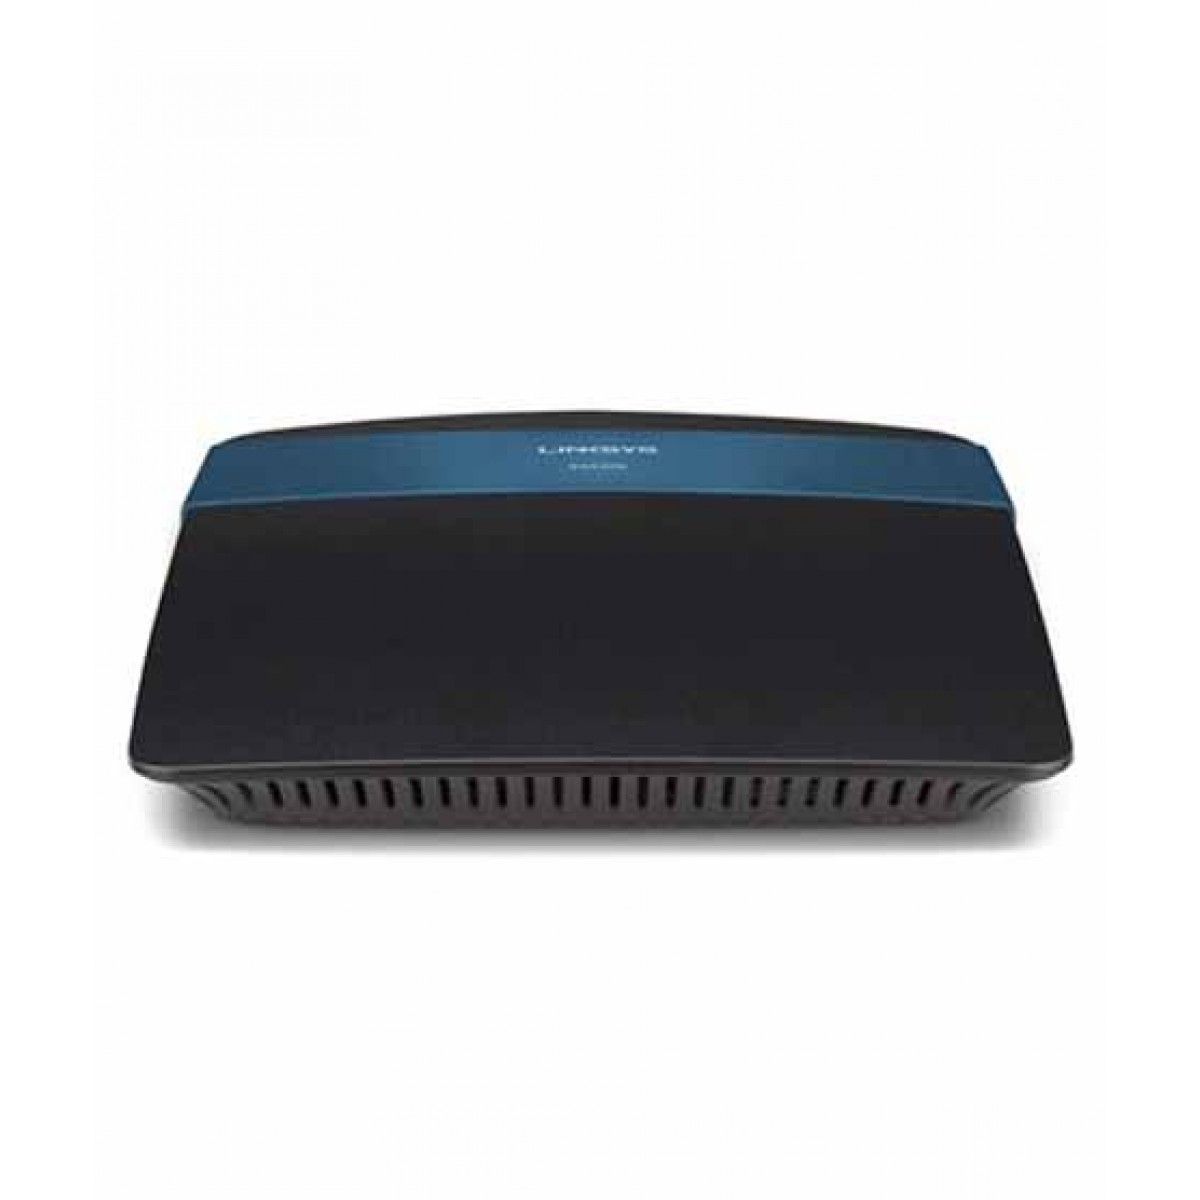 Linksys N600 Dual Band Wi-Fi Router (EA2700)